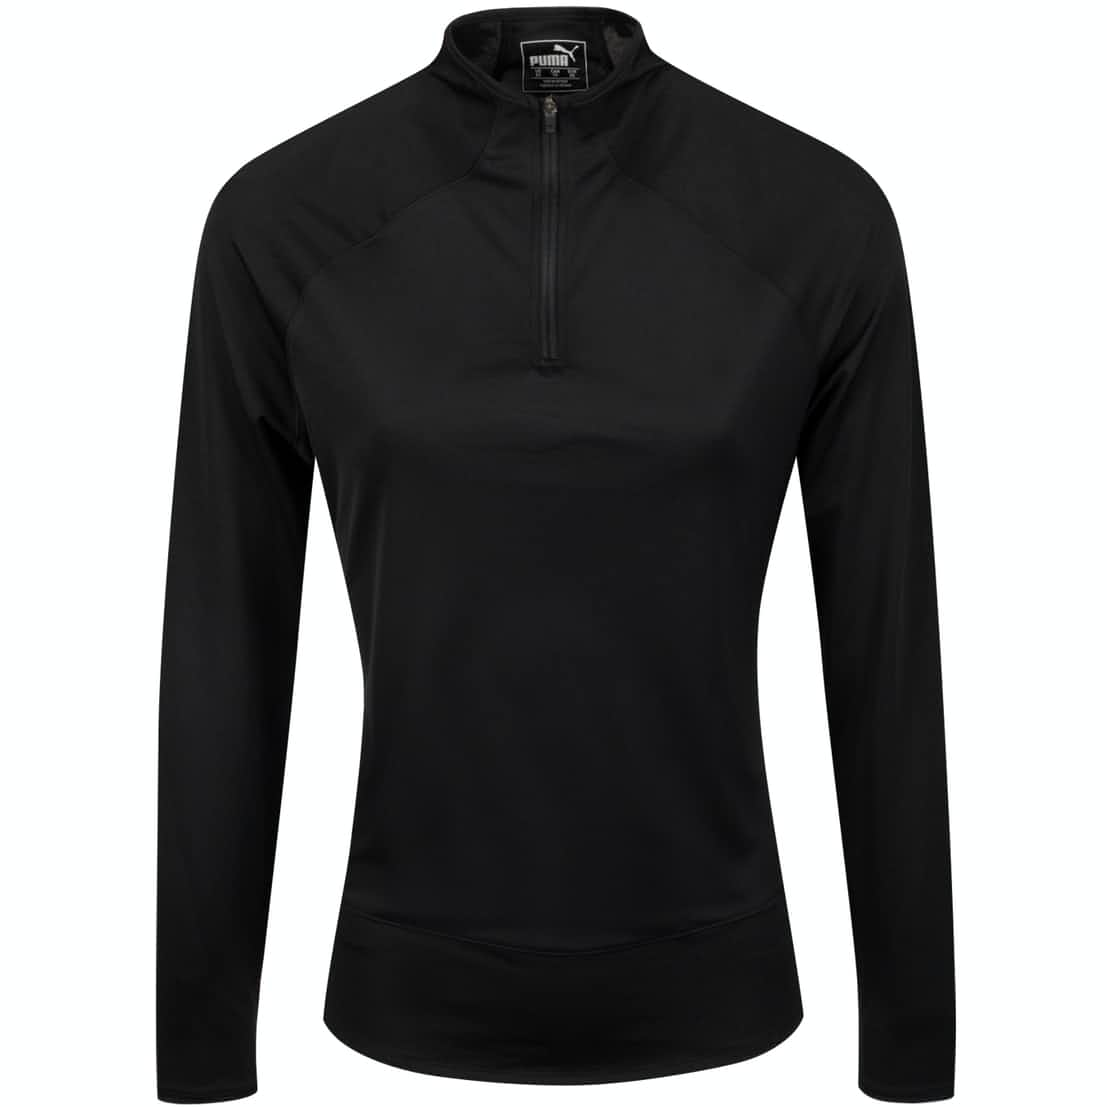 Womens Mesh Quarter Zip Black - SS20